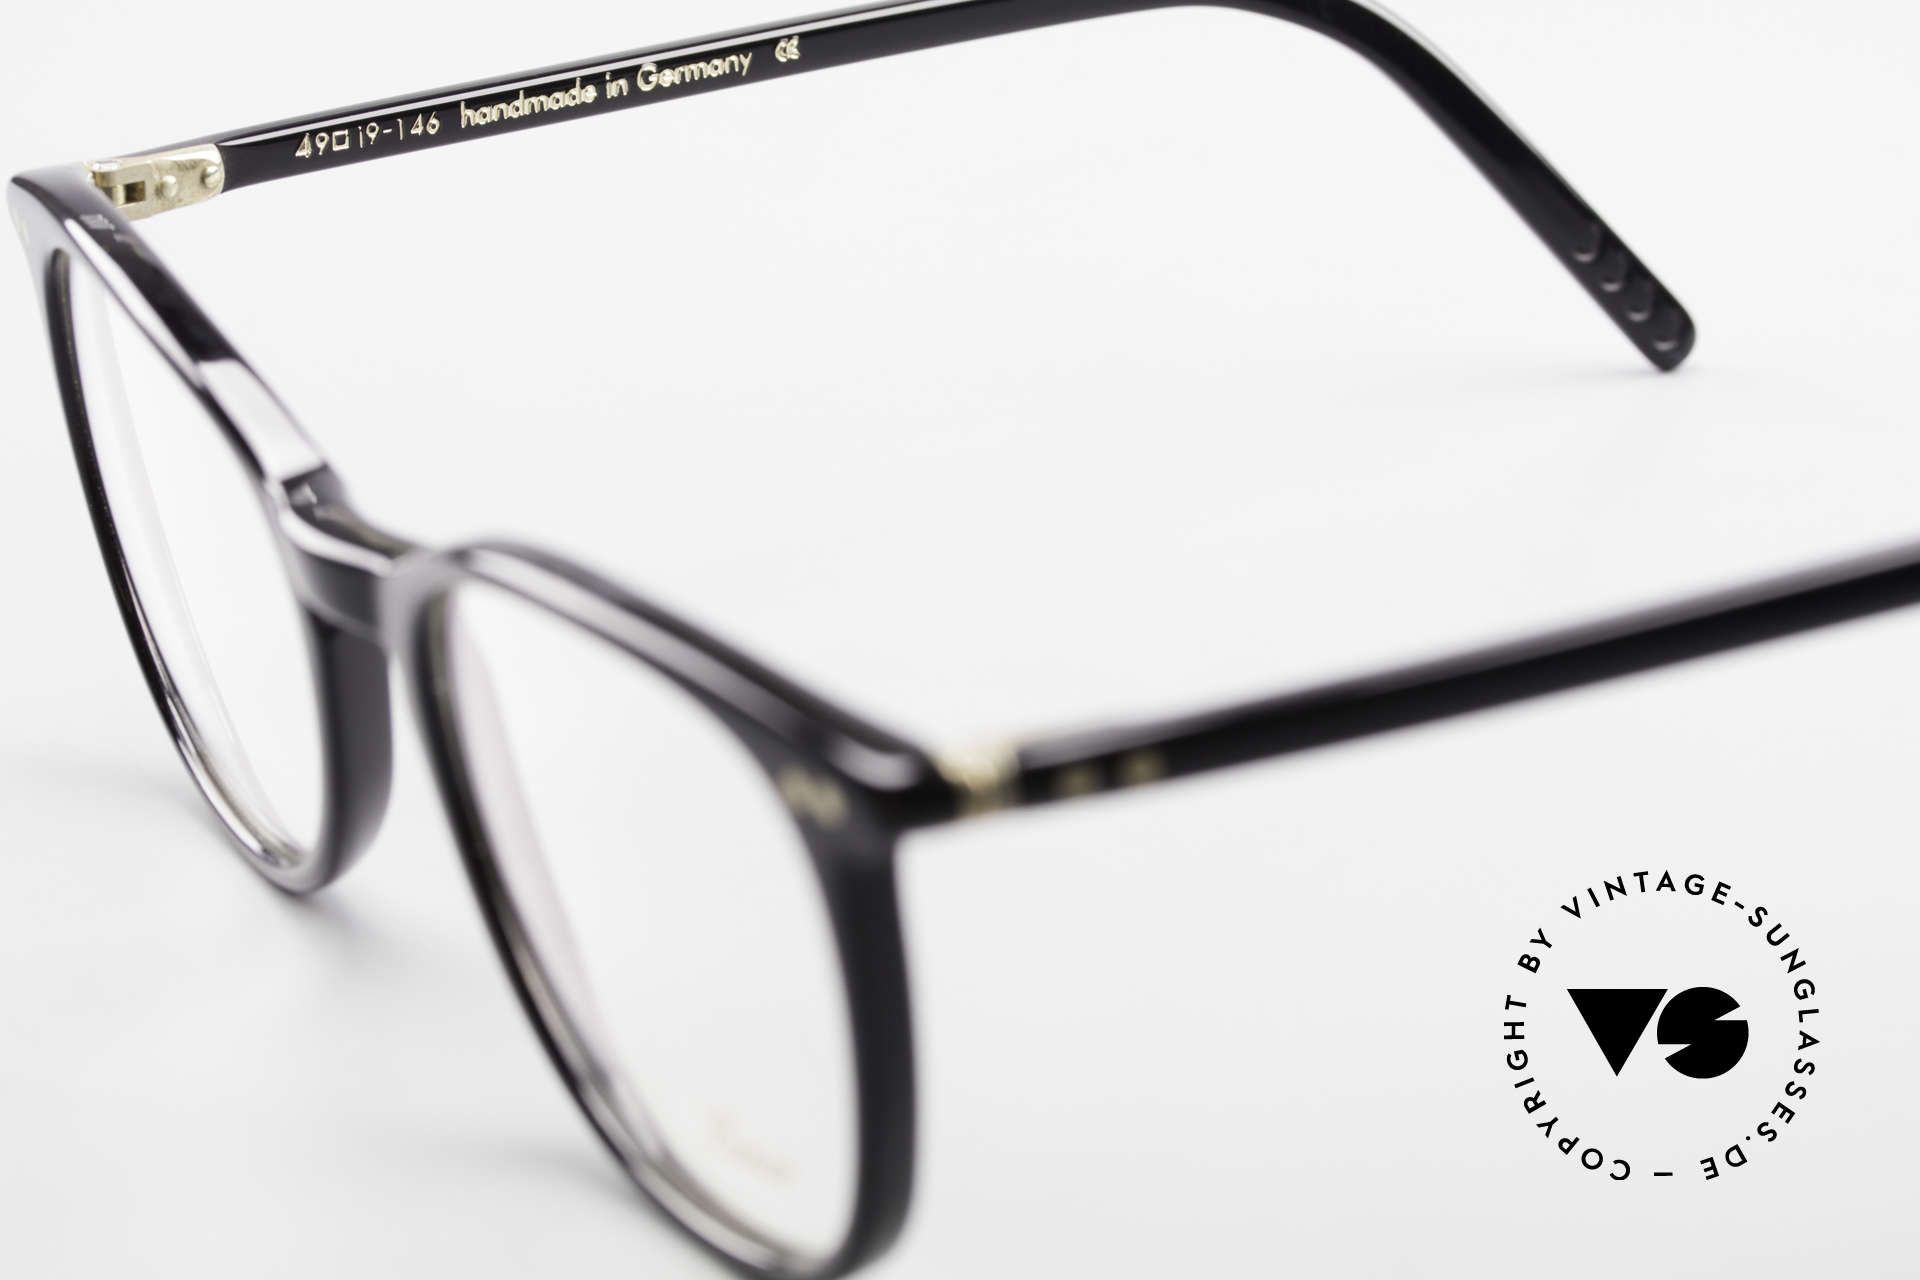 Lunor A5 234 Classic Timeless Eyeglasses, the demo lenses can be replaced with optical (sun) lenses, Made for Men and Women